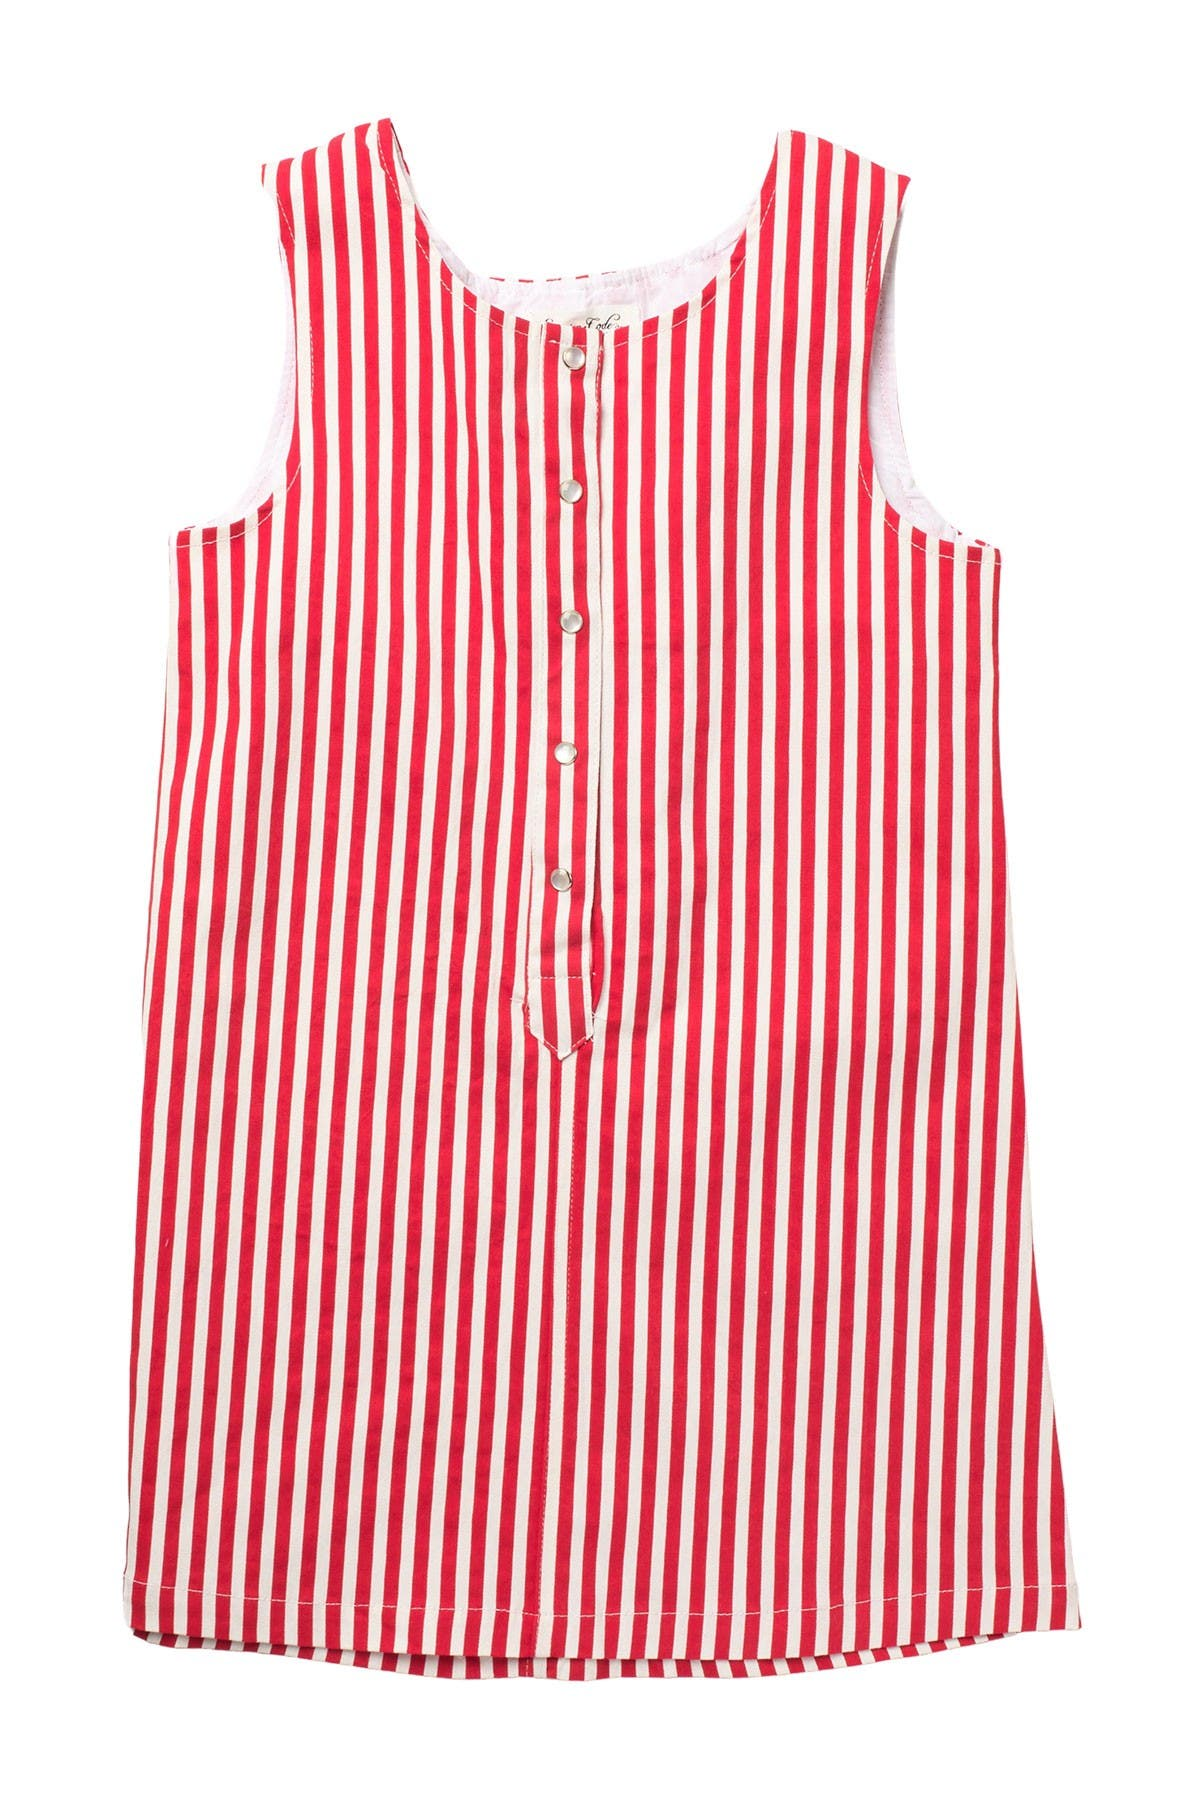 Image of Sovereign Code Maxine Stripe Tank Dress